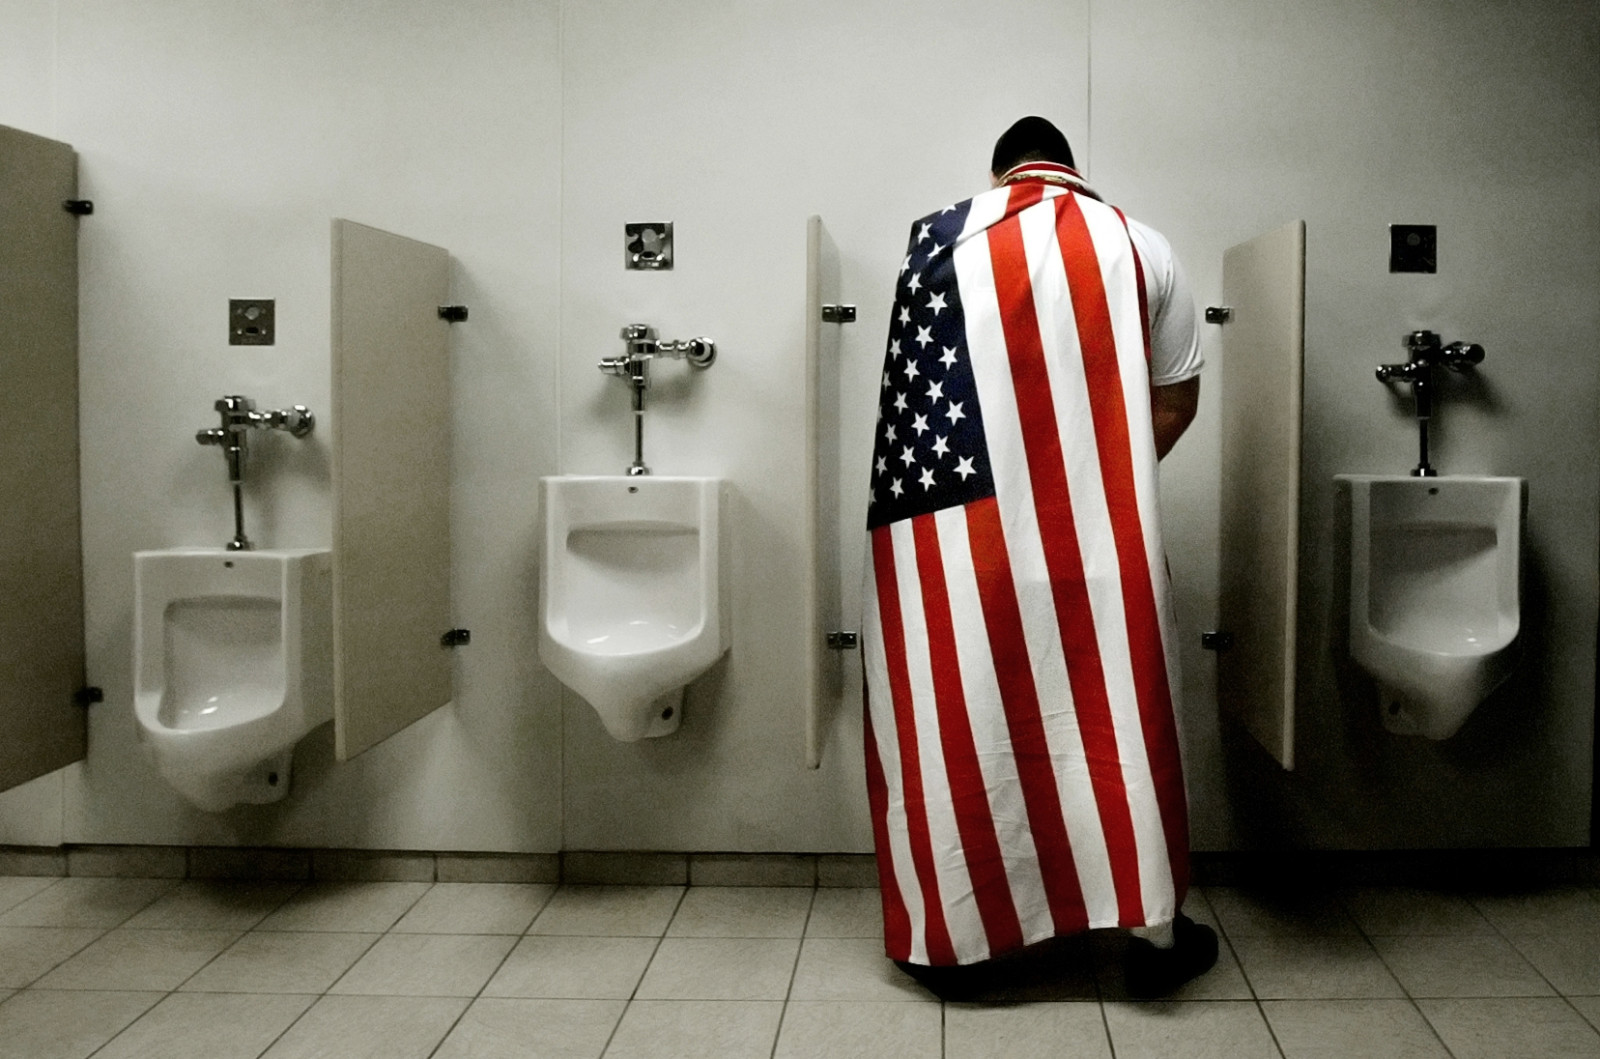 Bobby Poole of Overland Park, KS, takes a bathroom break during halftime of the World Cup watch party at Arrowhead Stadium Pavillion, Thursday, June 22, 2006, In Kansas City, Mo. Ghana defeated the U.S. 2-1.